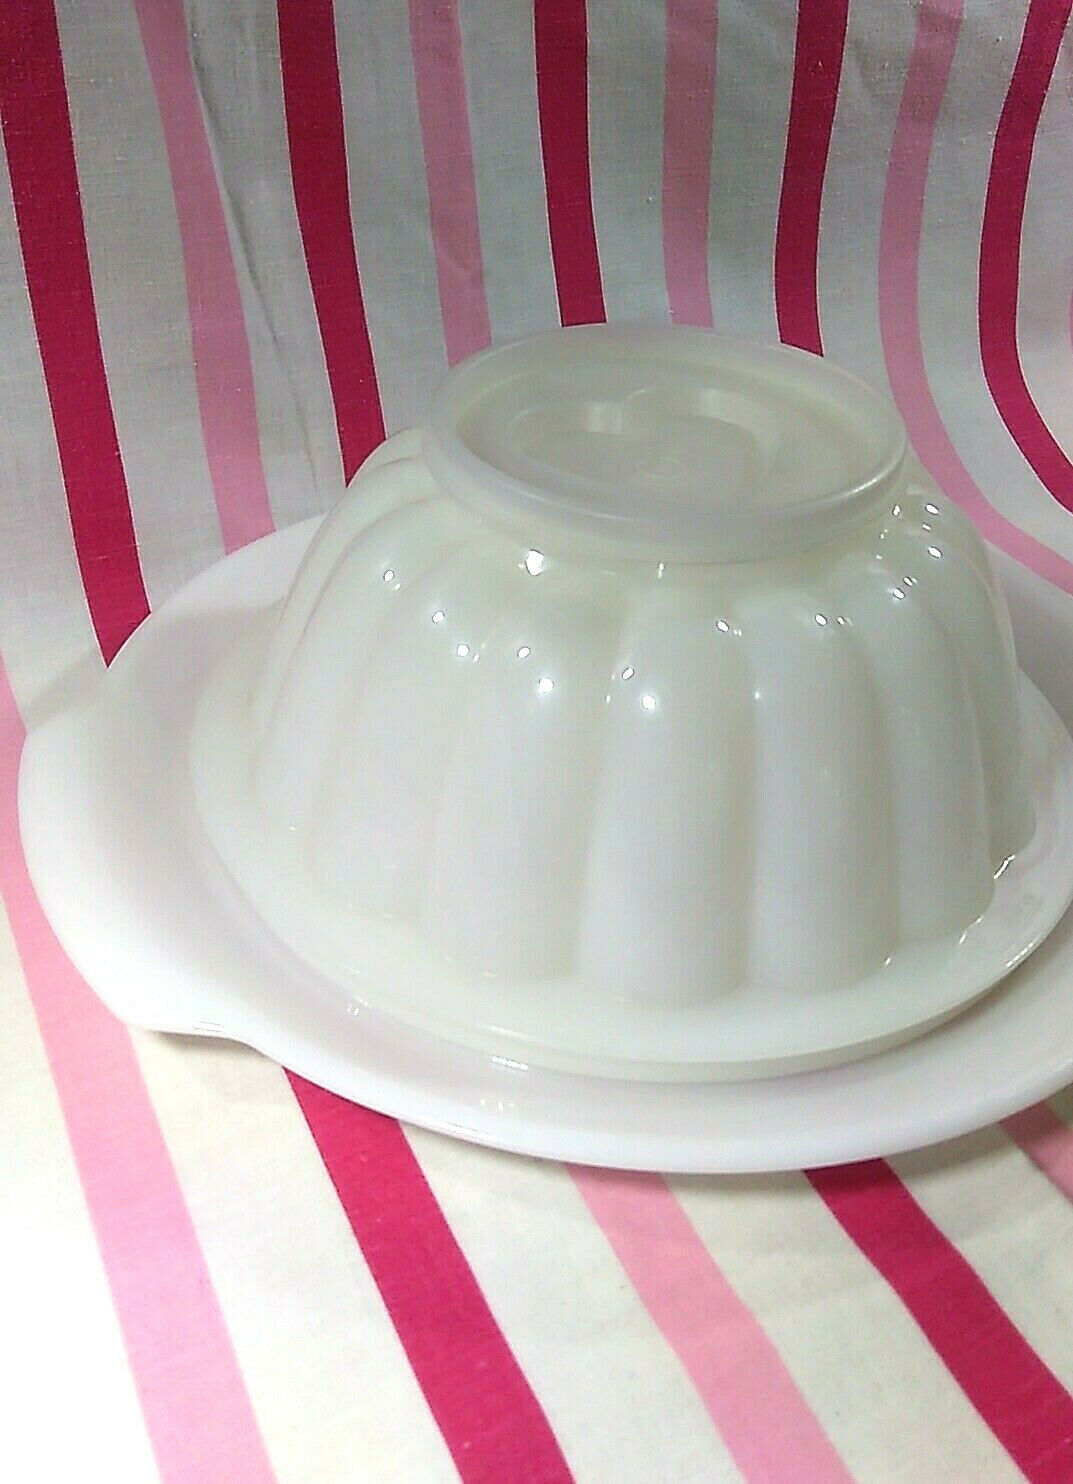 FUN Vintage Tupperware Jel-N-Serve Mold With White Tray and Heart Design Top image 4